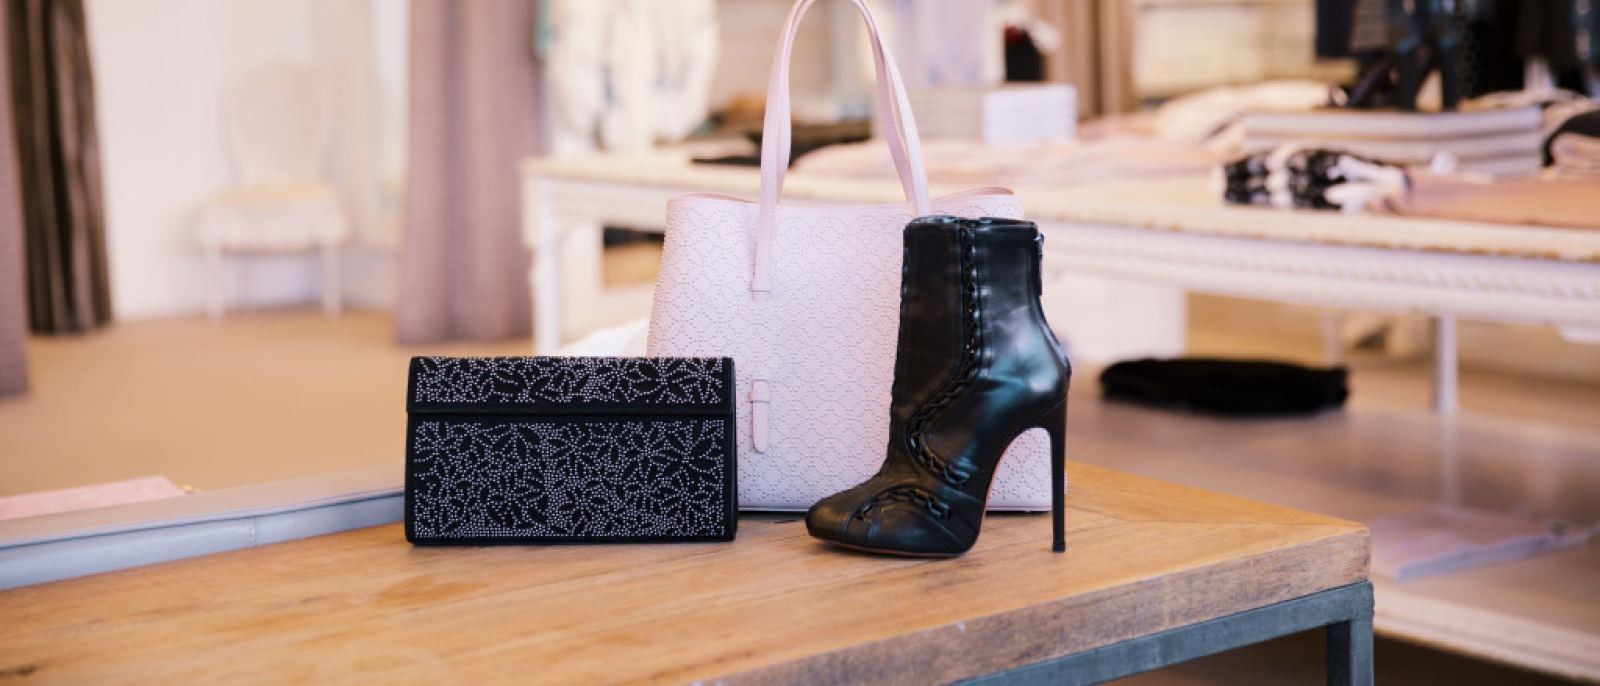 ae5b1c5443 The Guide to Celebrity Shopping in Los Angeles | Discover Los Angeles